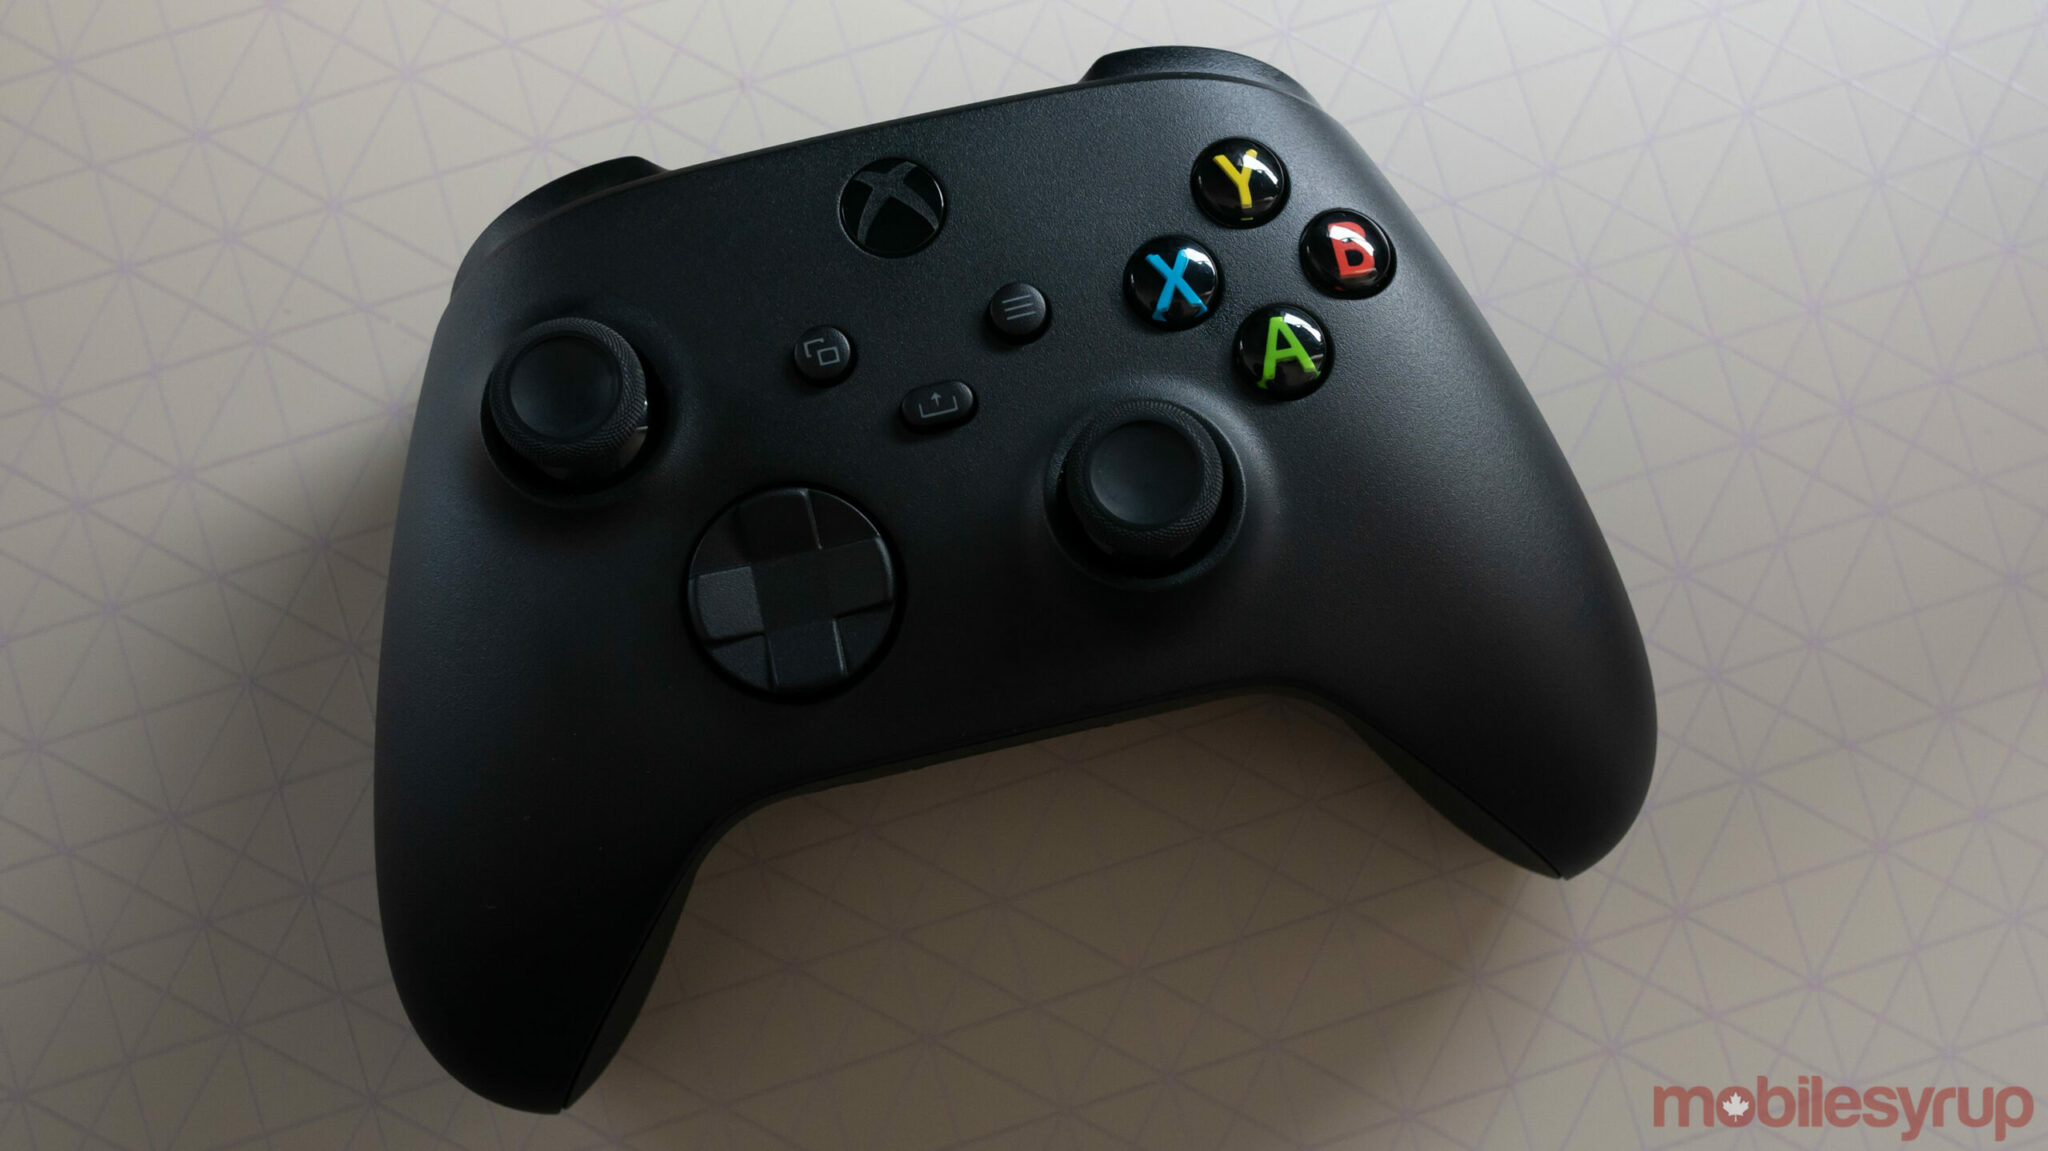 Microsoft testing 1080p, PC support for xCloud game streaming: report